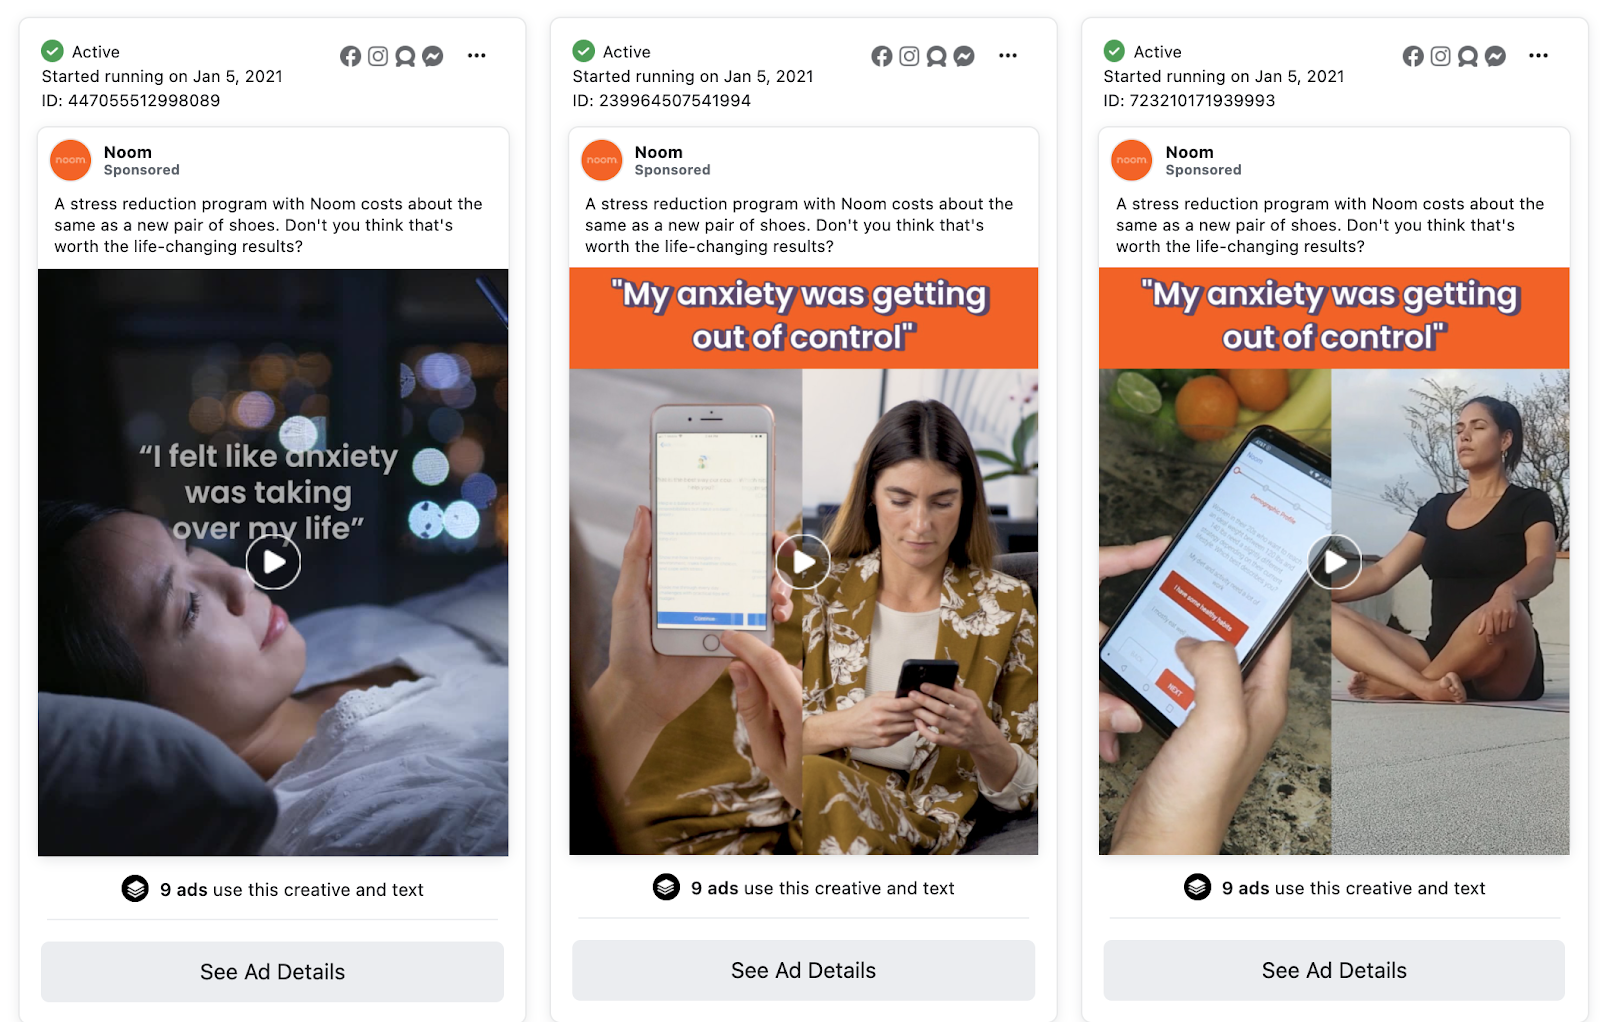 Templates for Facebook ads